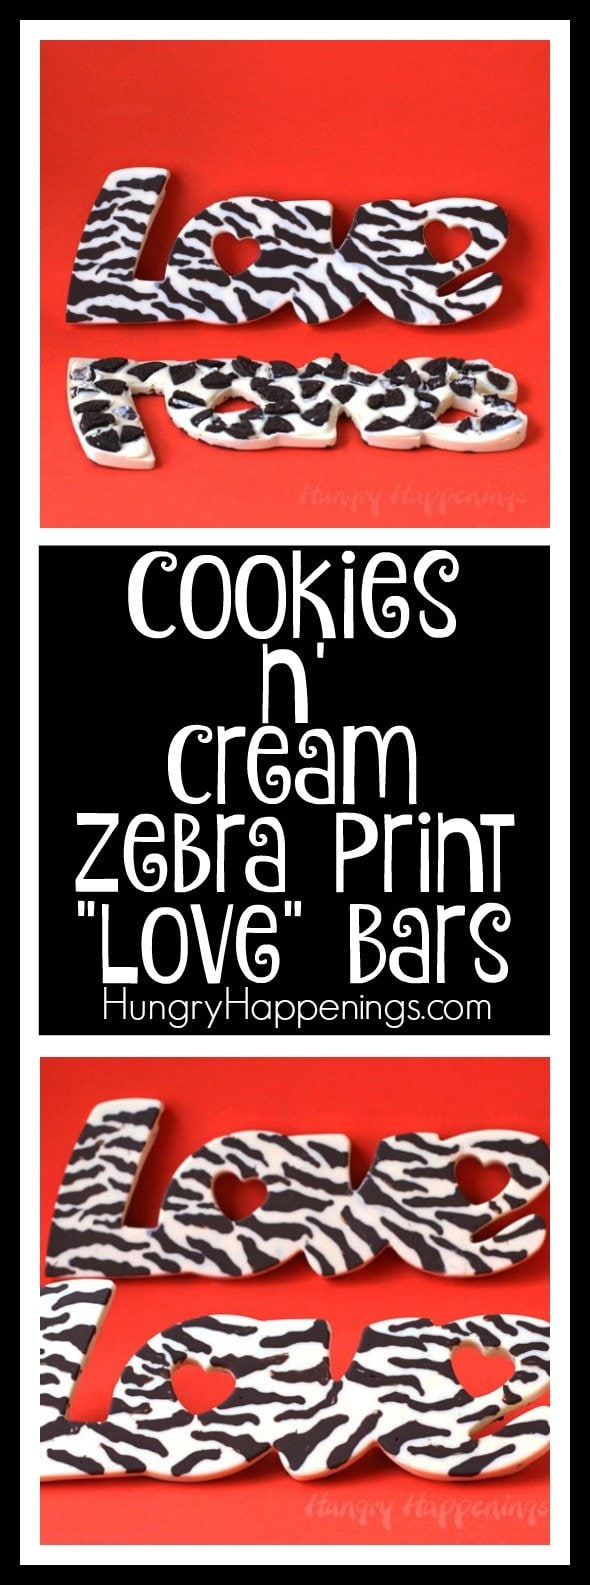 "Get a little wild this Valentine's Day. Give that special someone a handmade Cookies 'n Cream Zebra Print ""Love"" Bar. Get them to embrace their inner animal show you what they're made of."